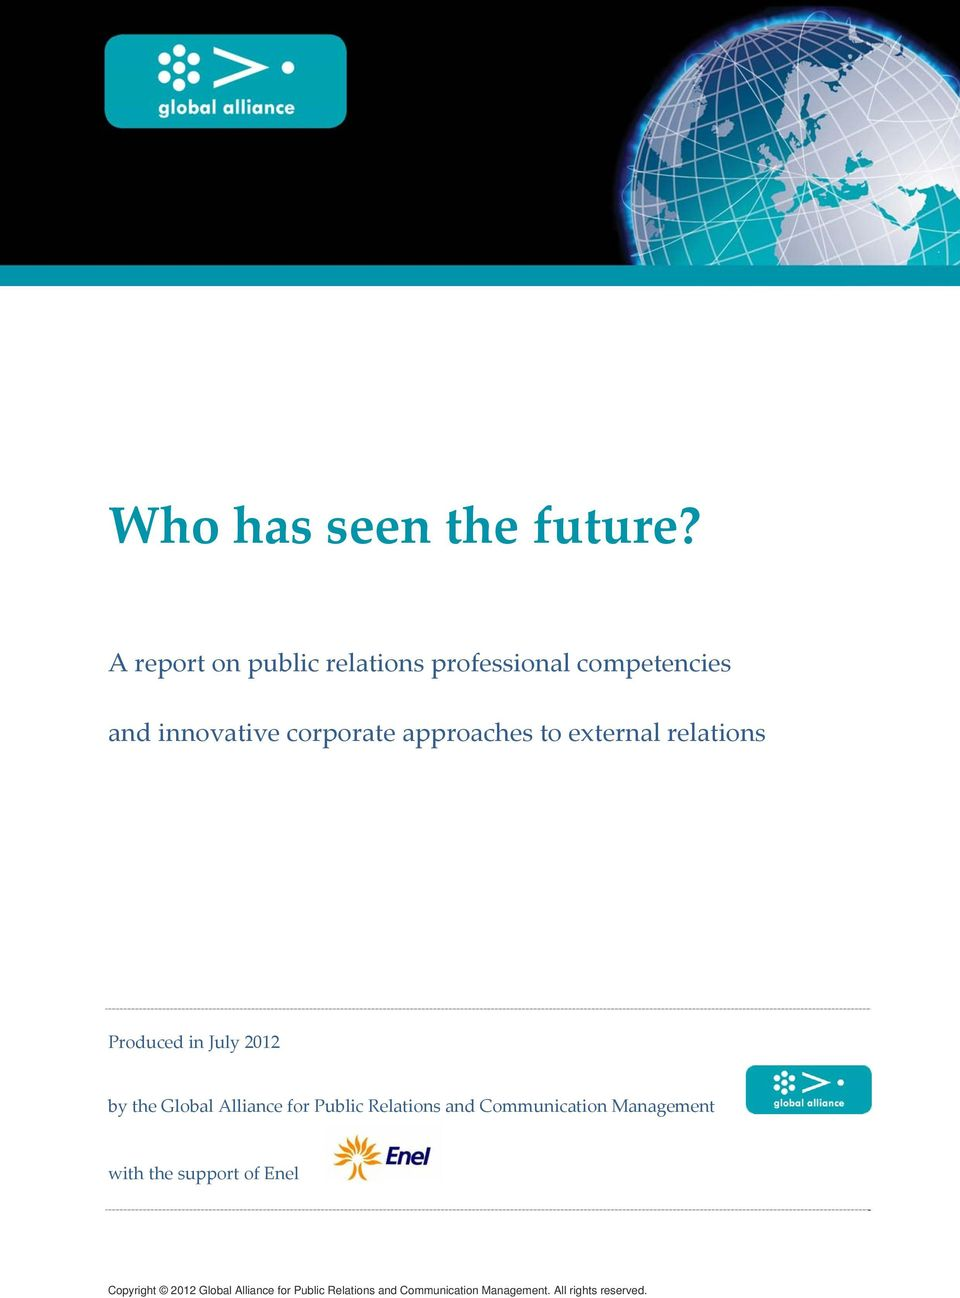 A report on public relations professional competencies and innovative corporate